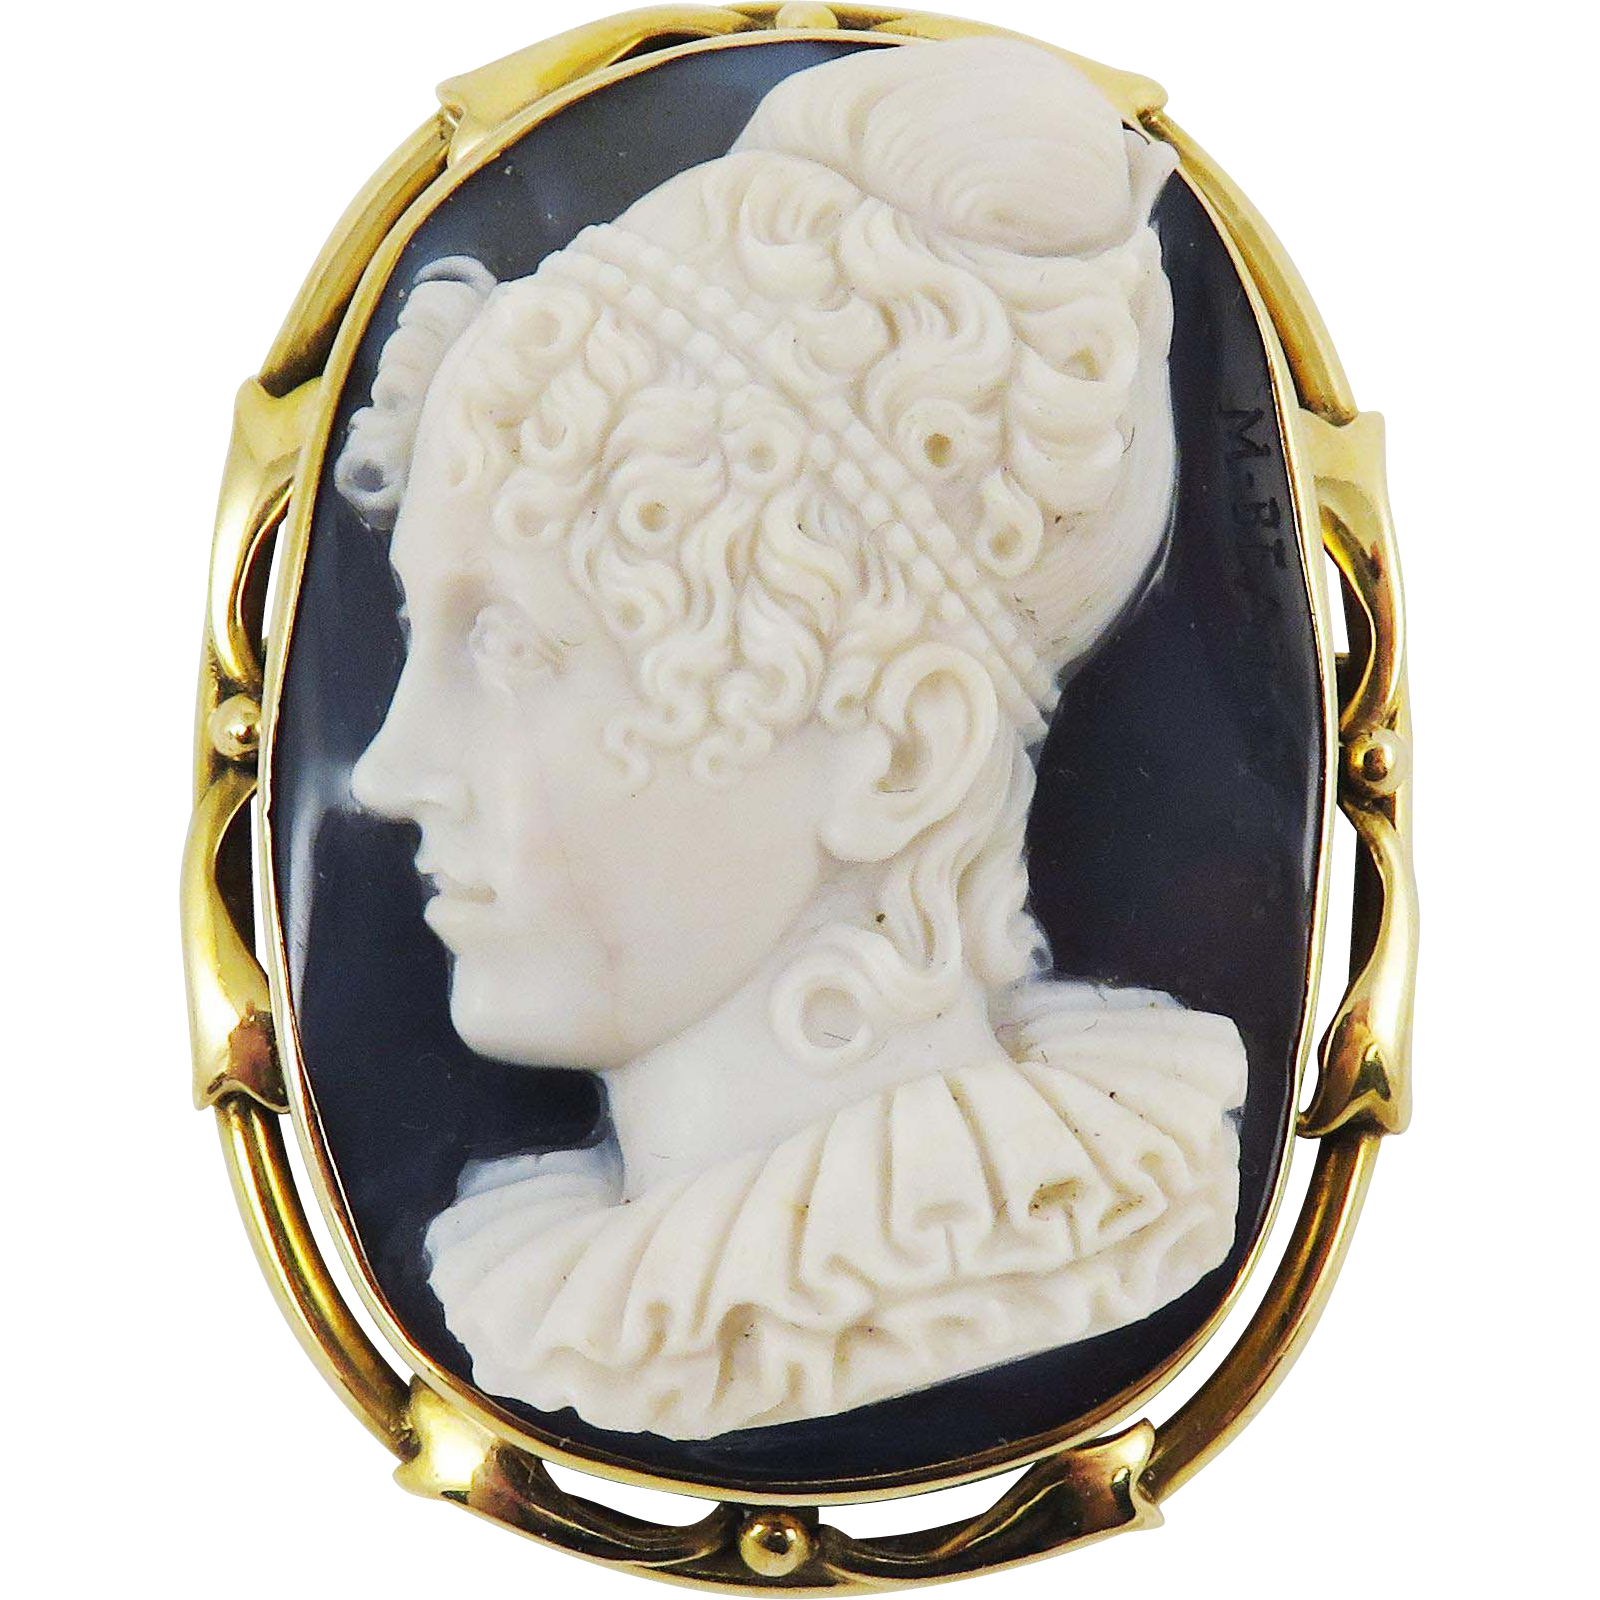 MASTERPIECE Onyx Portrait Cameo of a Lady Signed by Vittoria Pozzi Set in 14k Pendant/Brooch, c.1840!